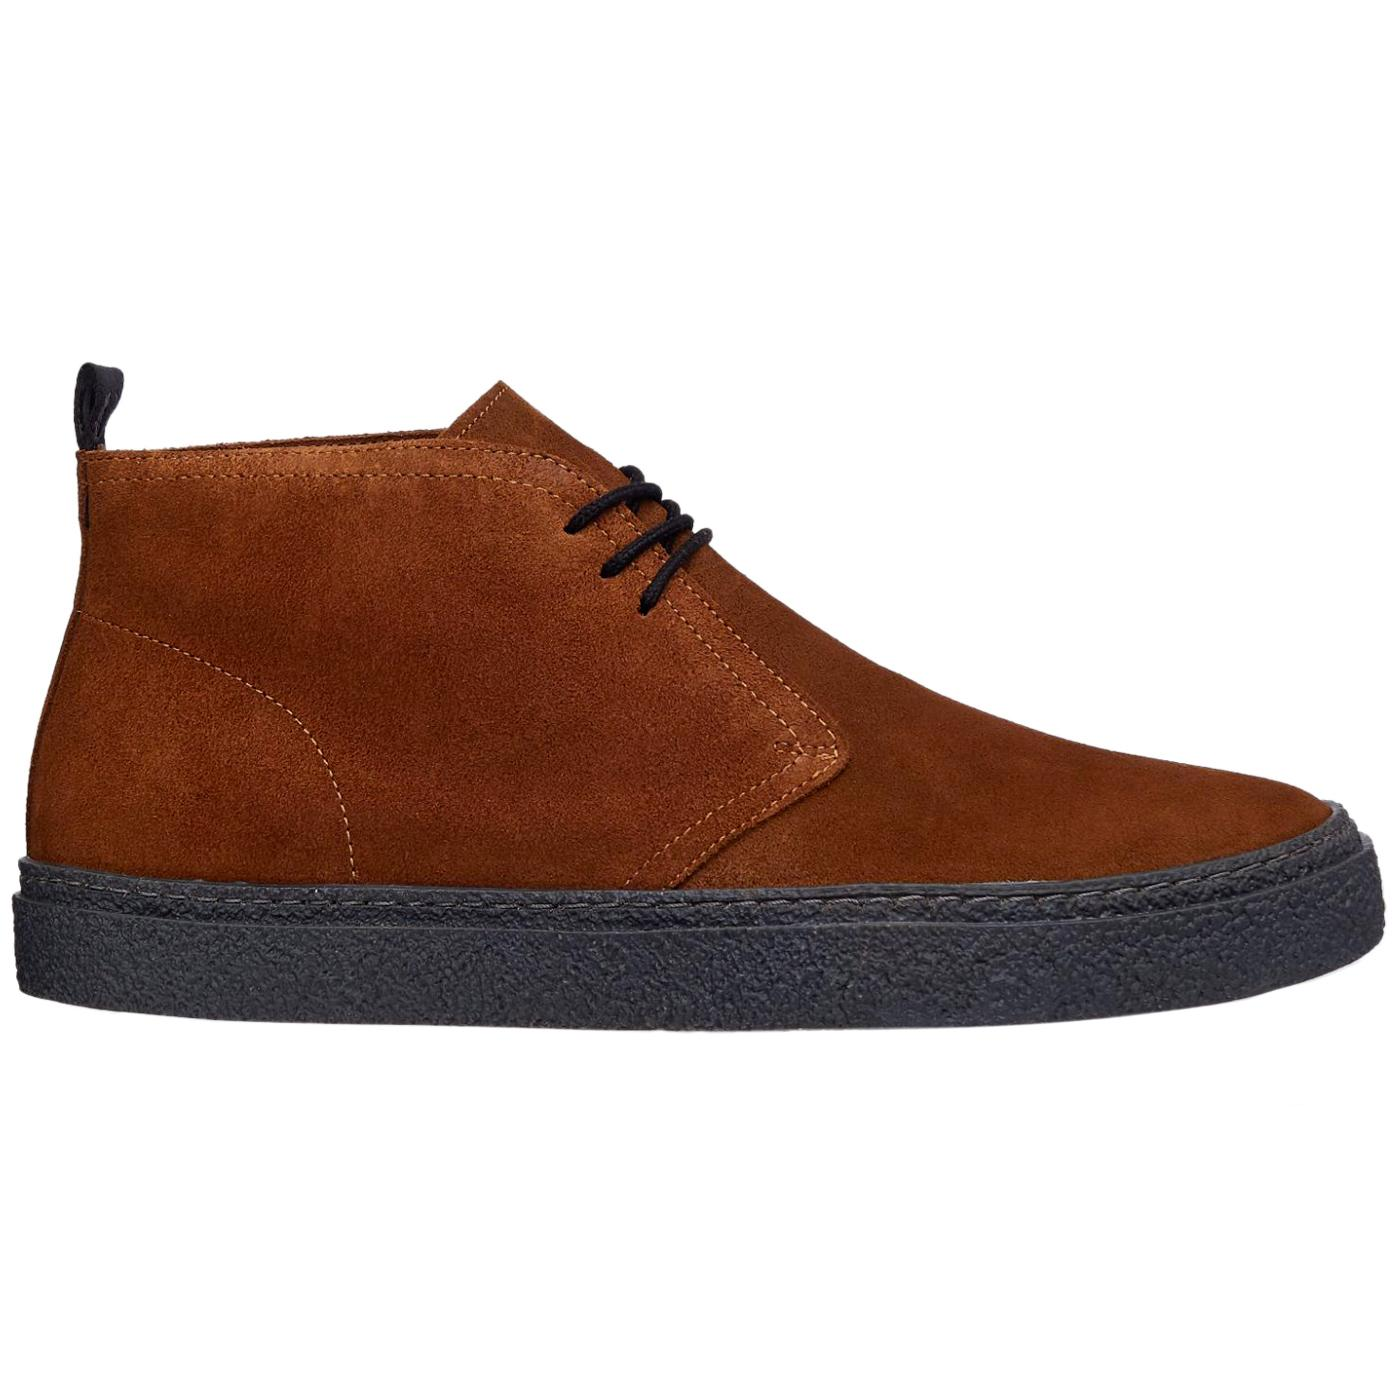 Hawley FRED PERRY Mod Crepe Desert Boots - Ginger